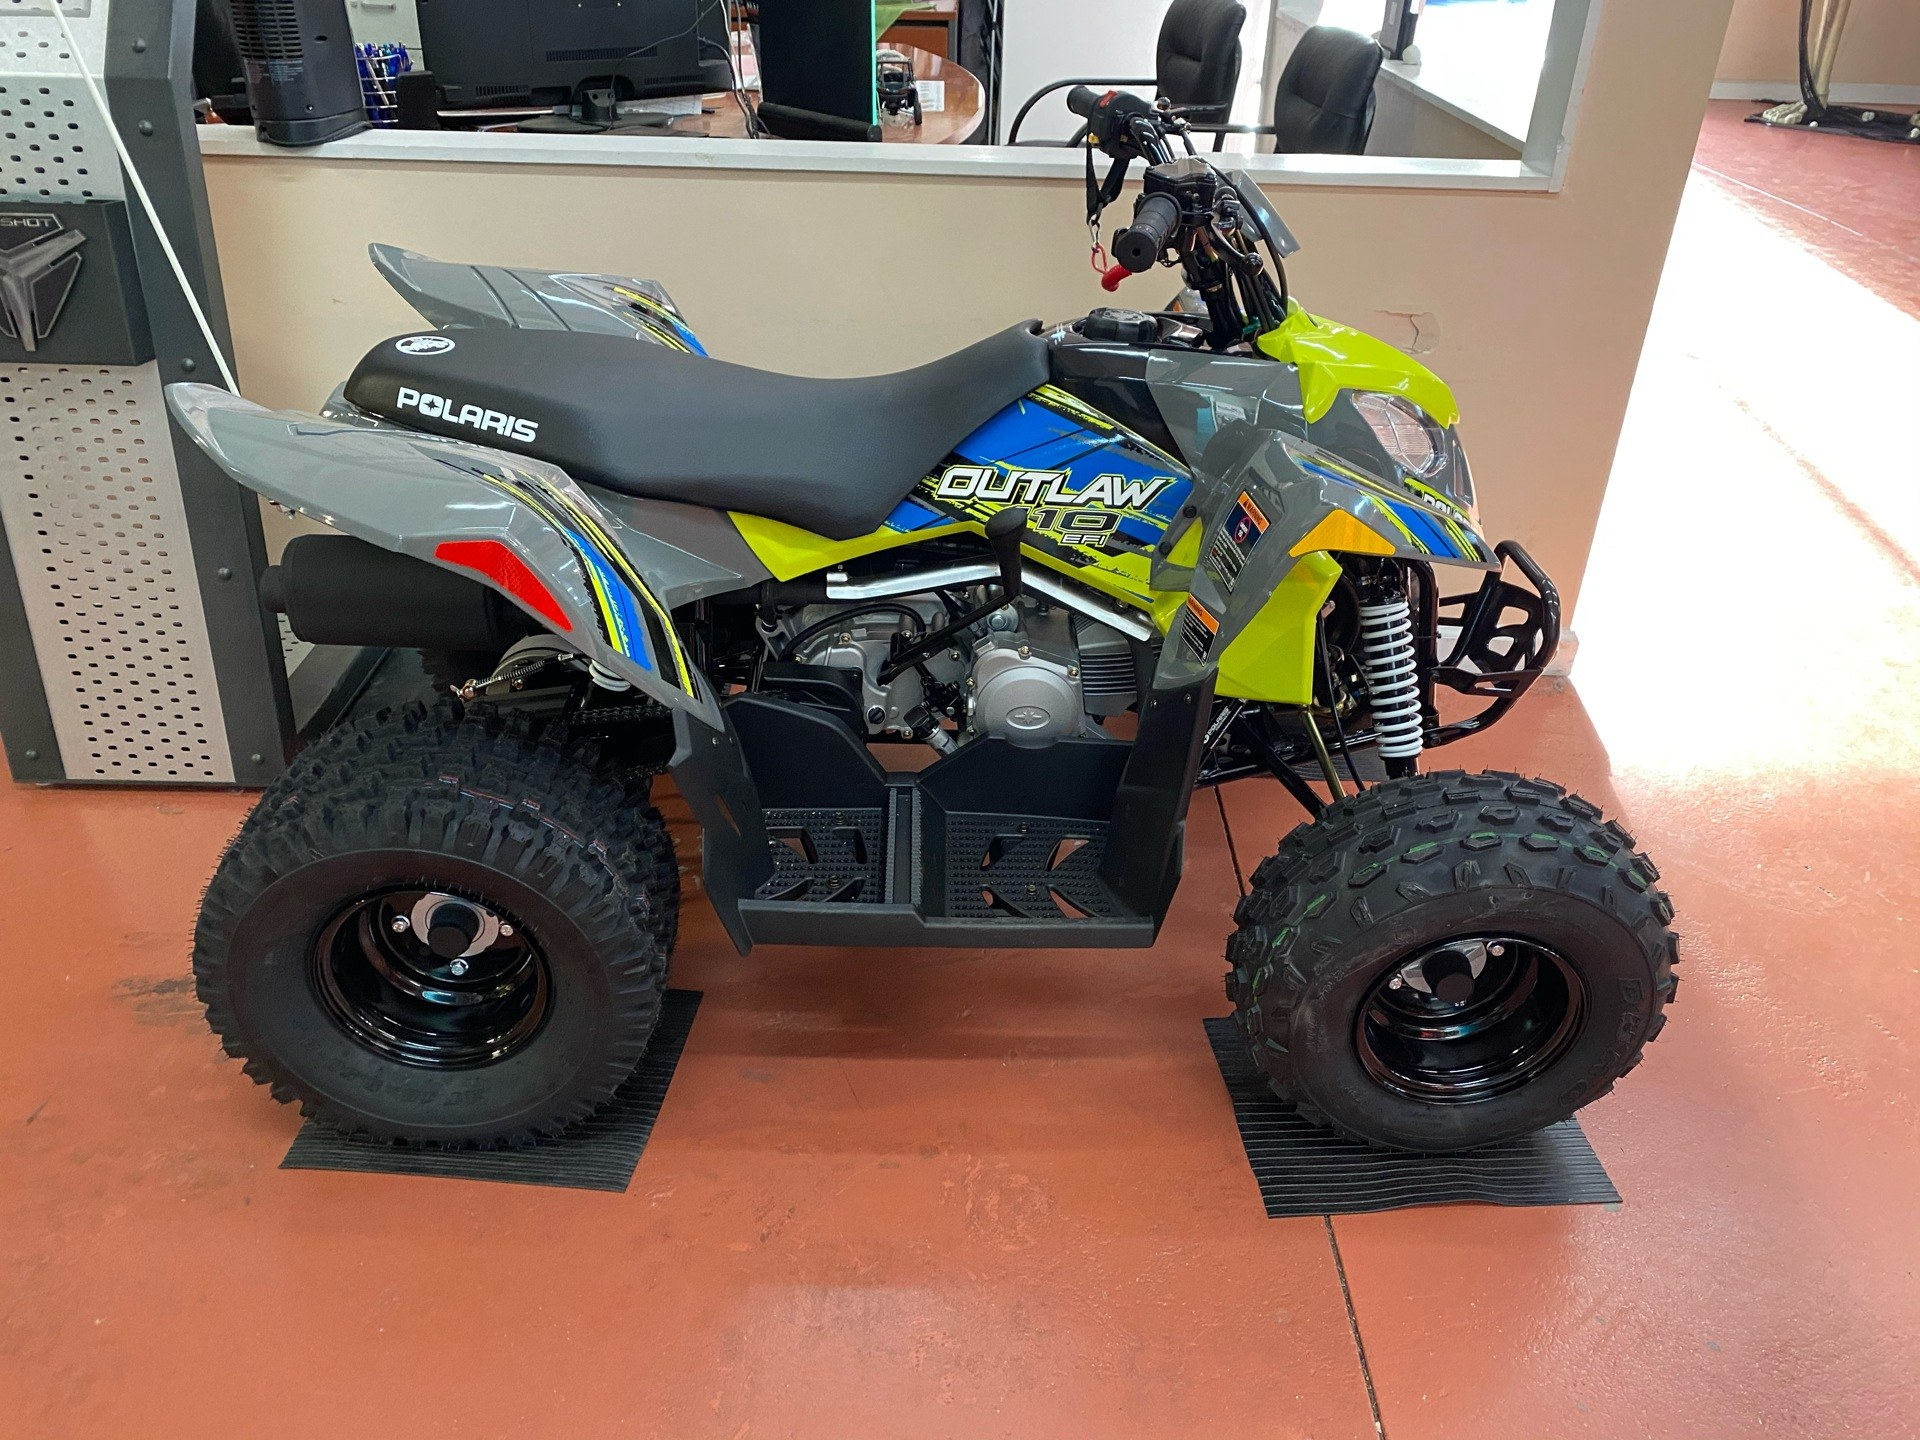 2021 Polaris Outlaw 110 EFI in Chesapeake, Virginia - Photo 3